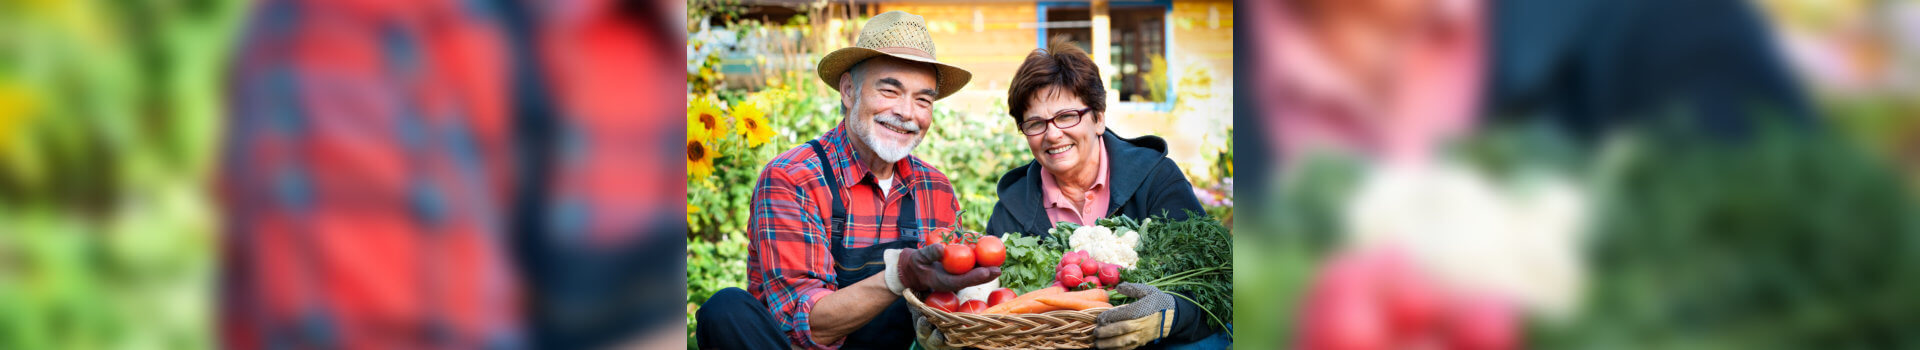 couples holding vegetable basket